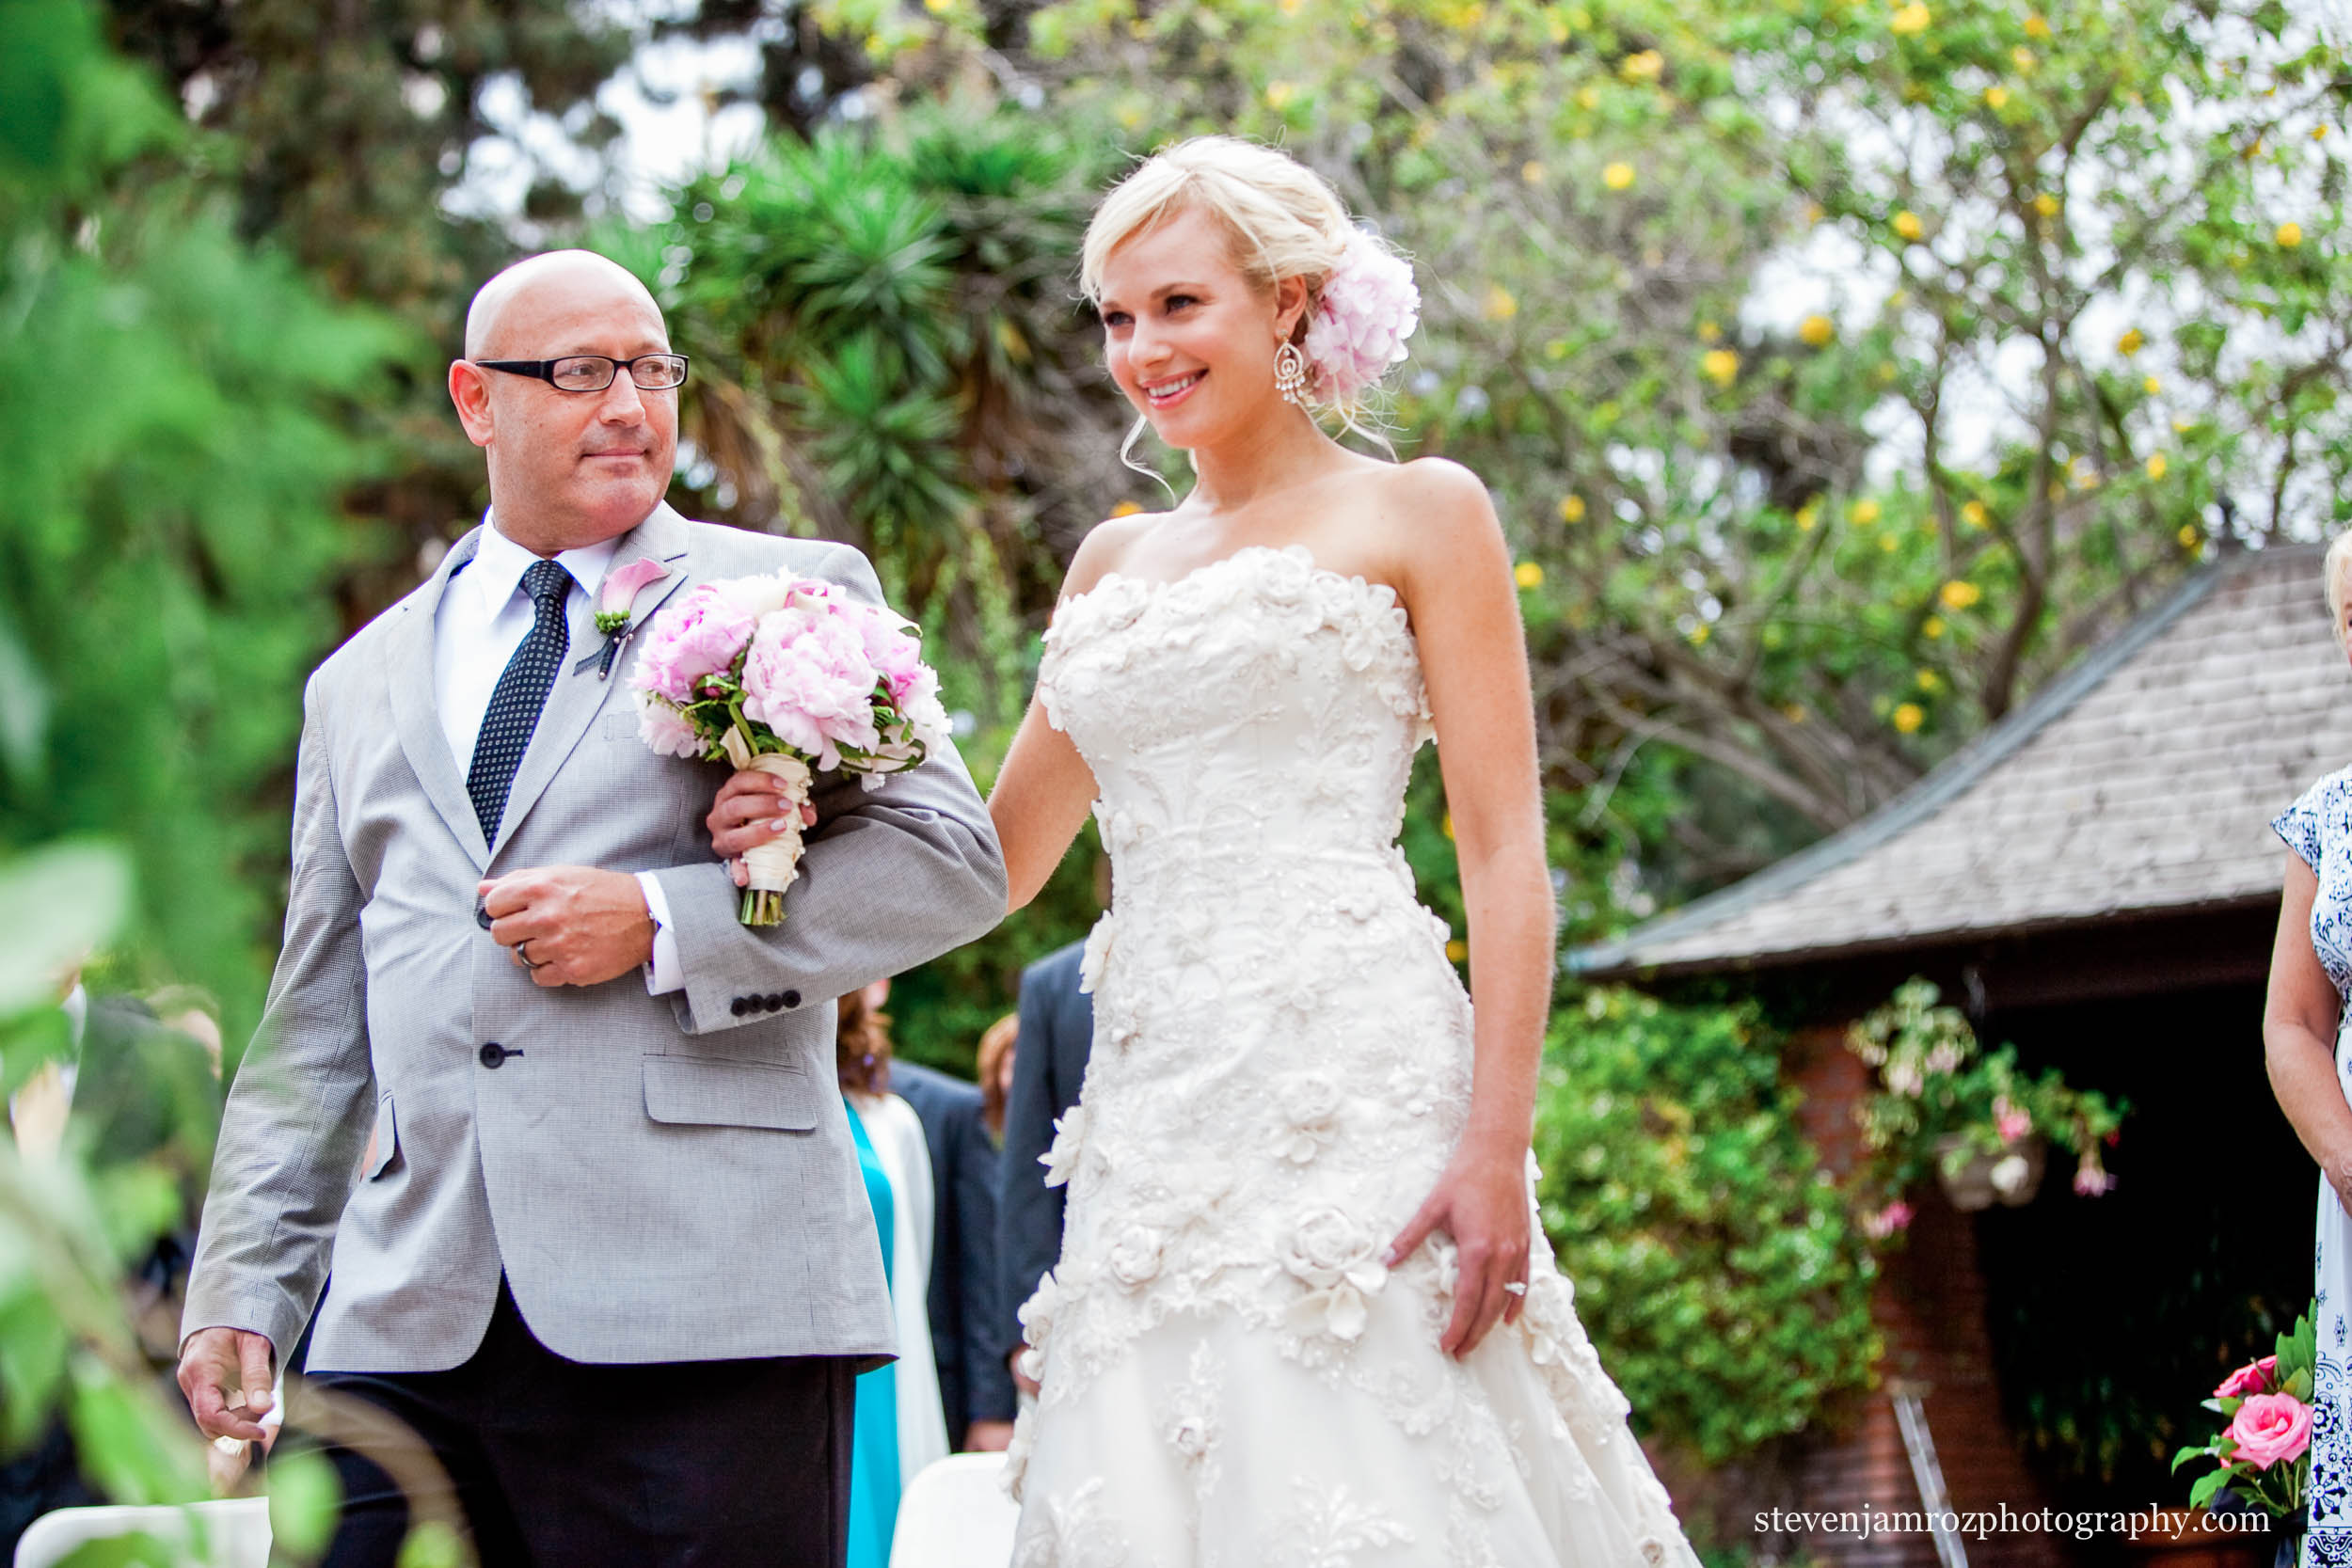 father-walking-bride-down-aisle-steven-jamroz-photography-0273.jpg